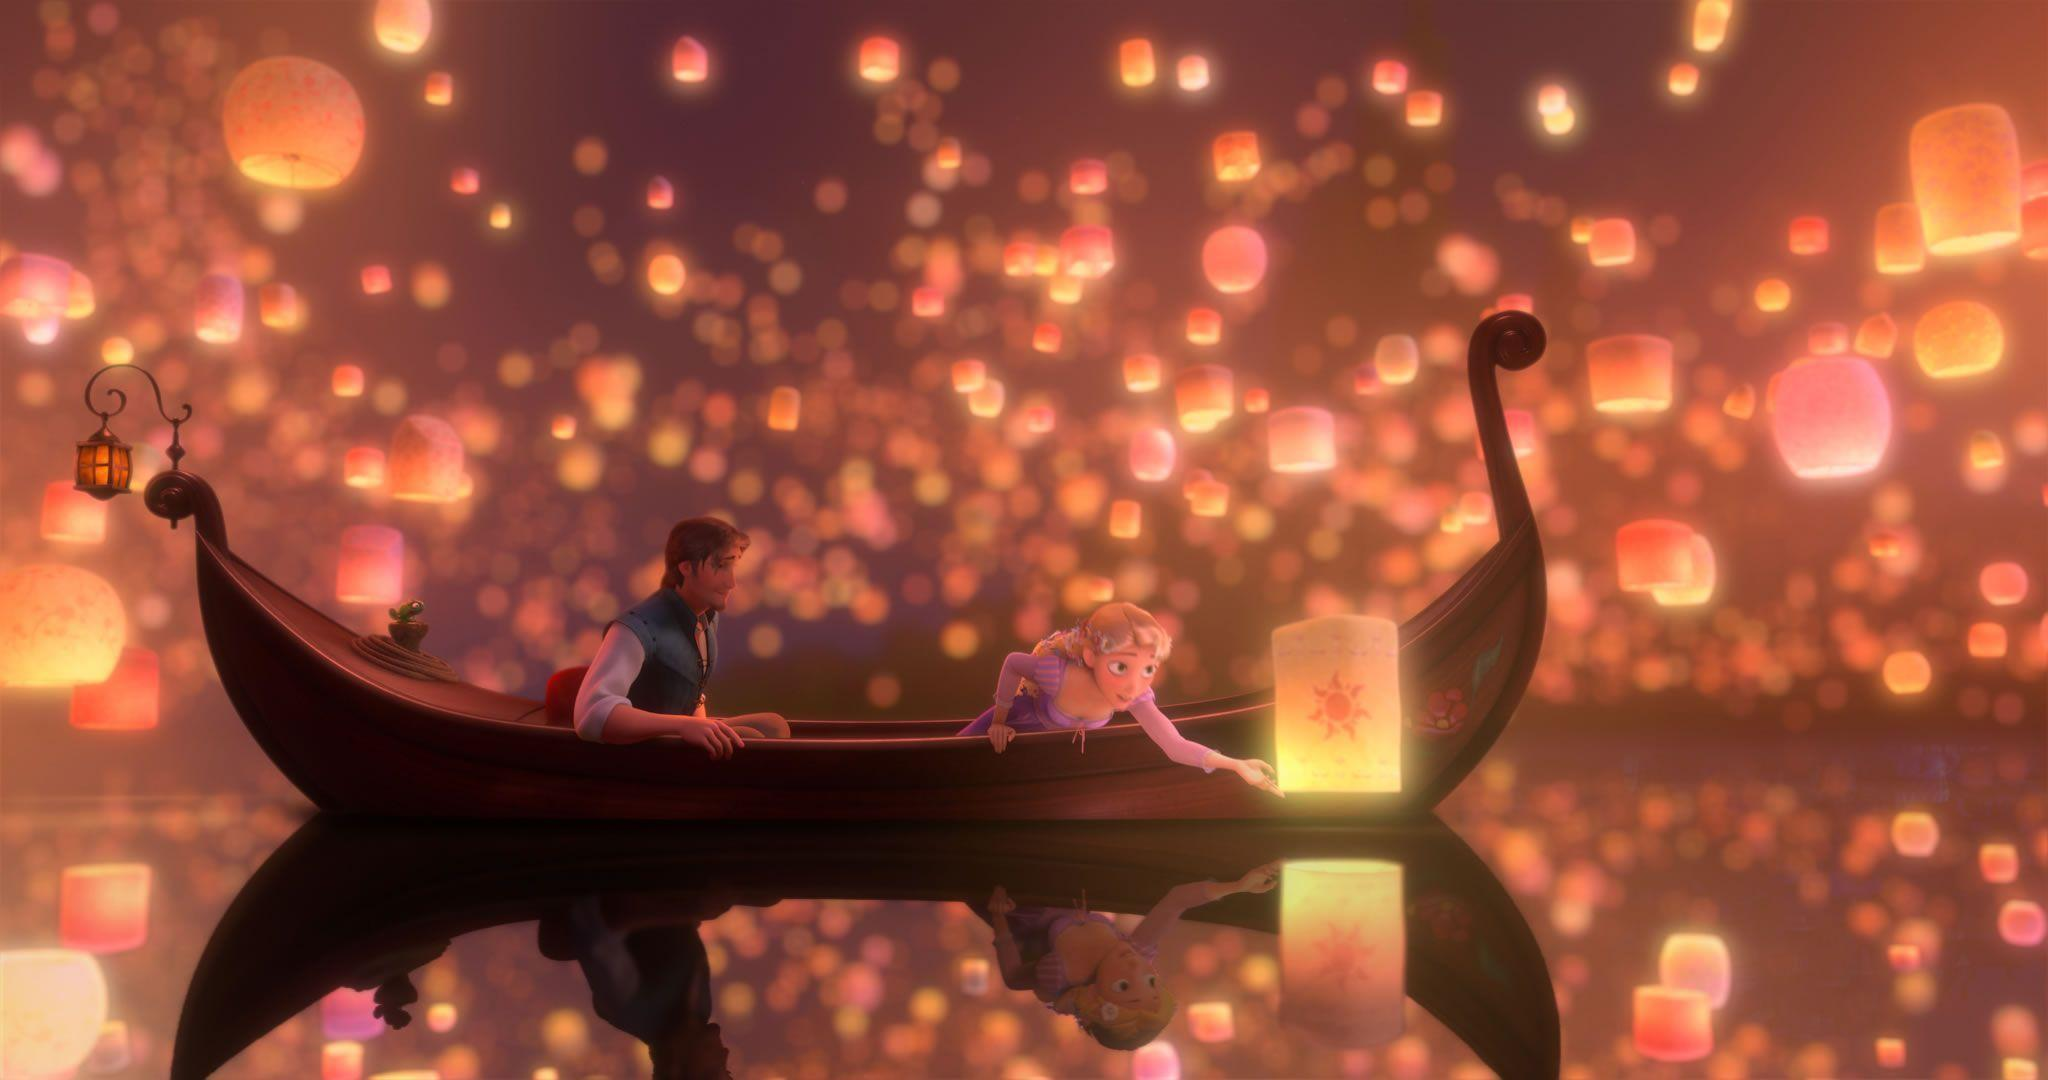 Over 40 Images from Walt Disney's TANGLED